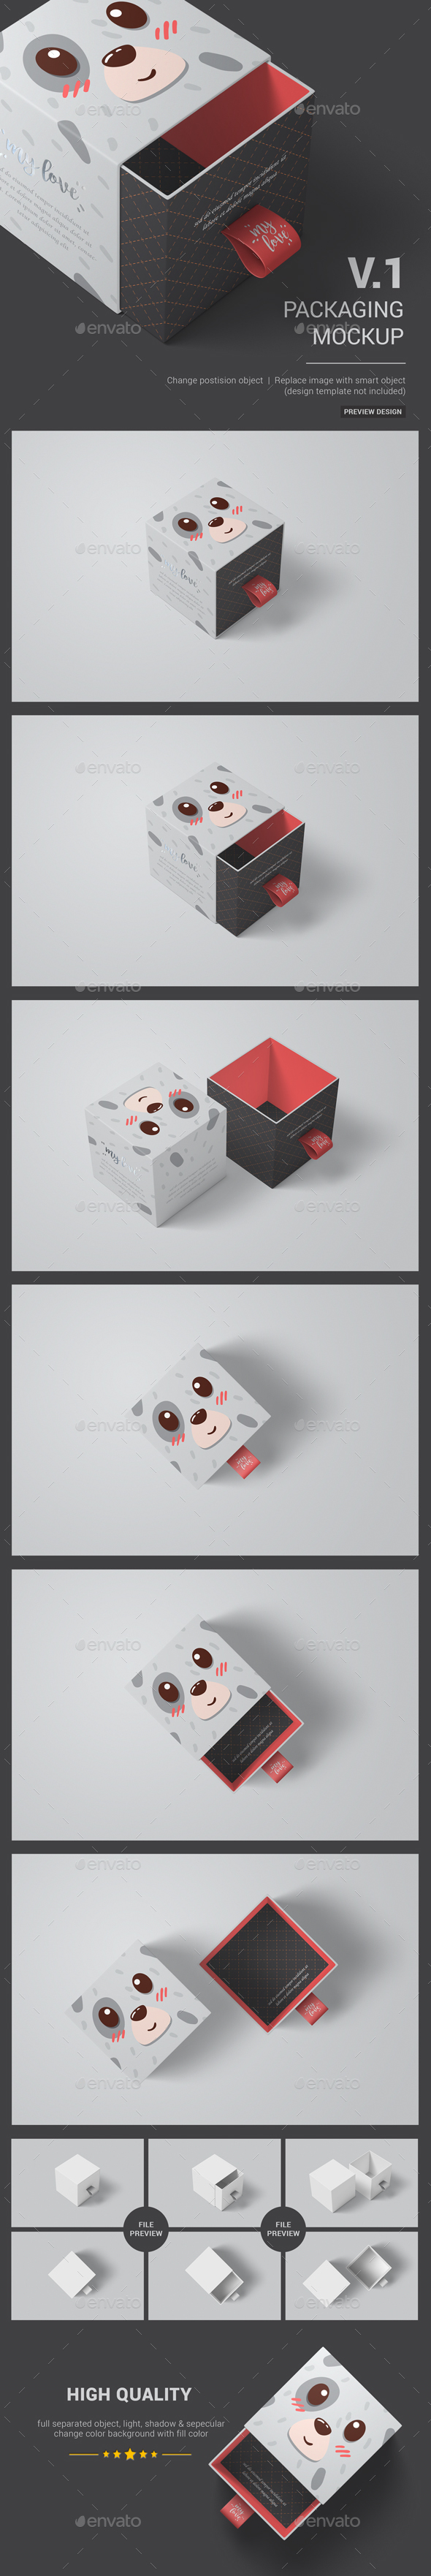 GraphicRiver Sliding Box Packaging Package Mockup 01 20914617